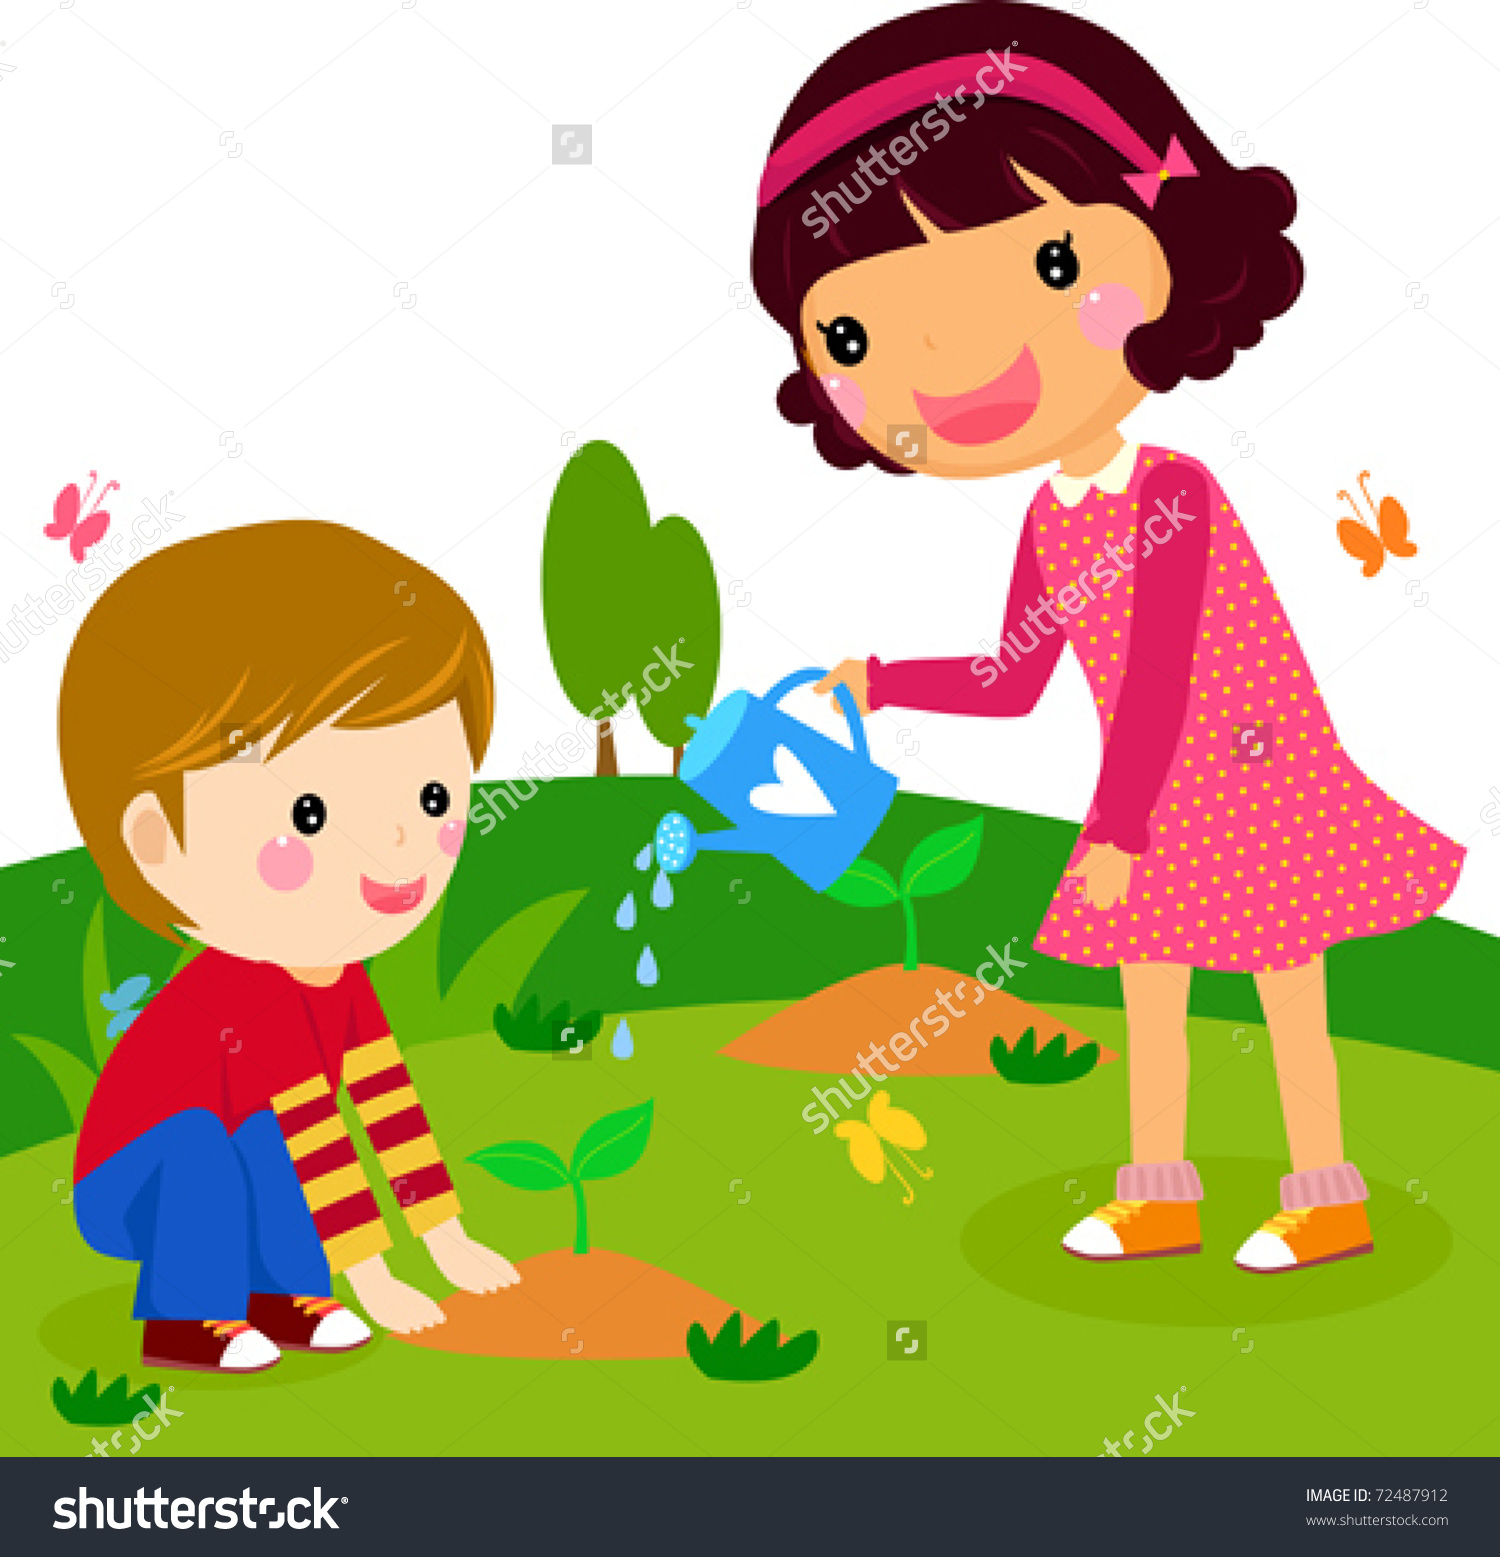 Take a drink to person in garden clipart.